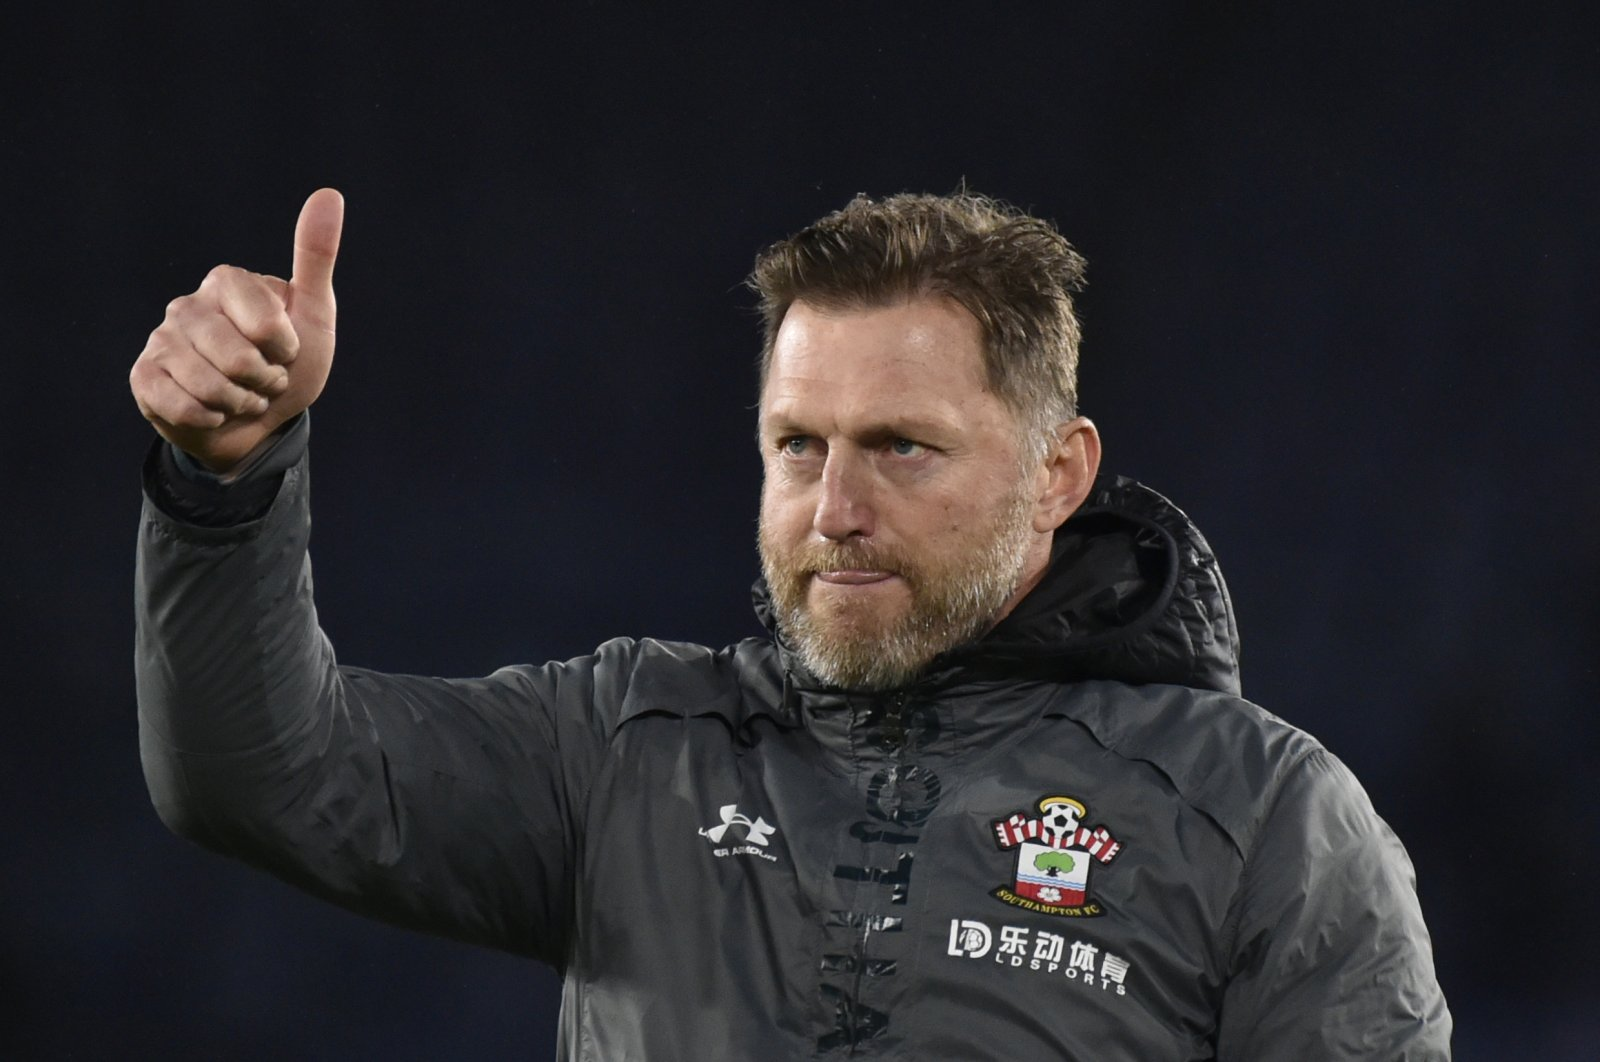 Southampton's manager Ralph Hasenhuettl gestures during a Premier League match in Leicester, England, Jan. 11, 2020. (AP Photo)